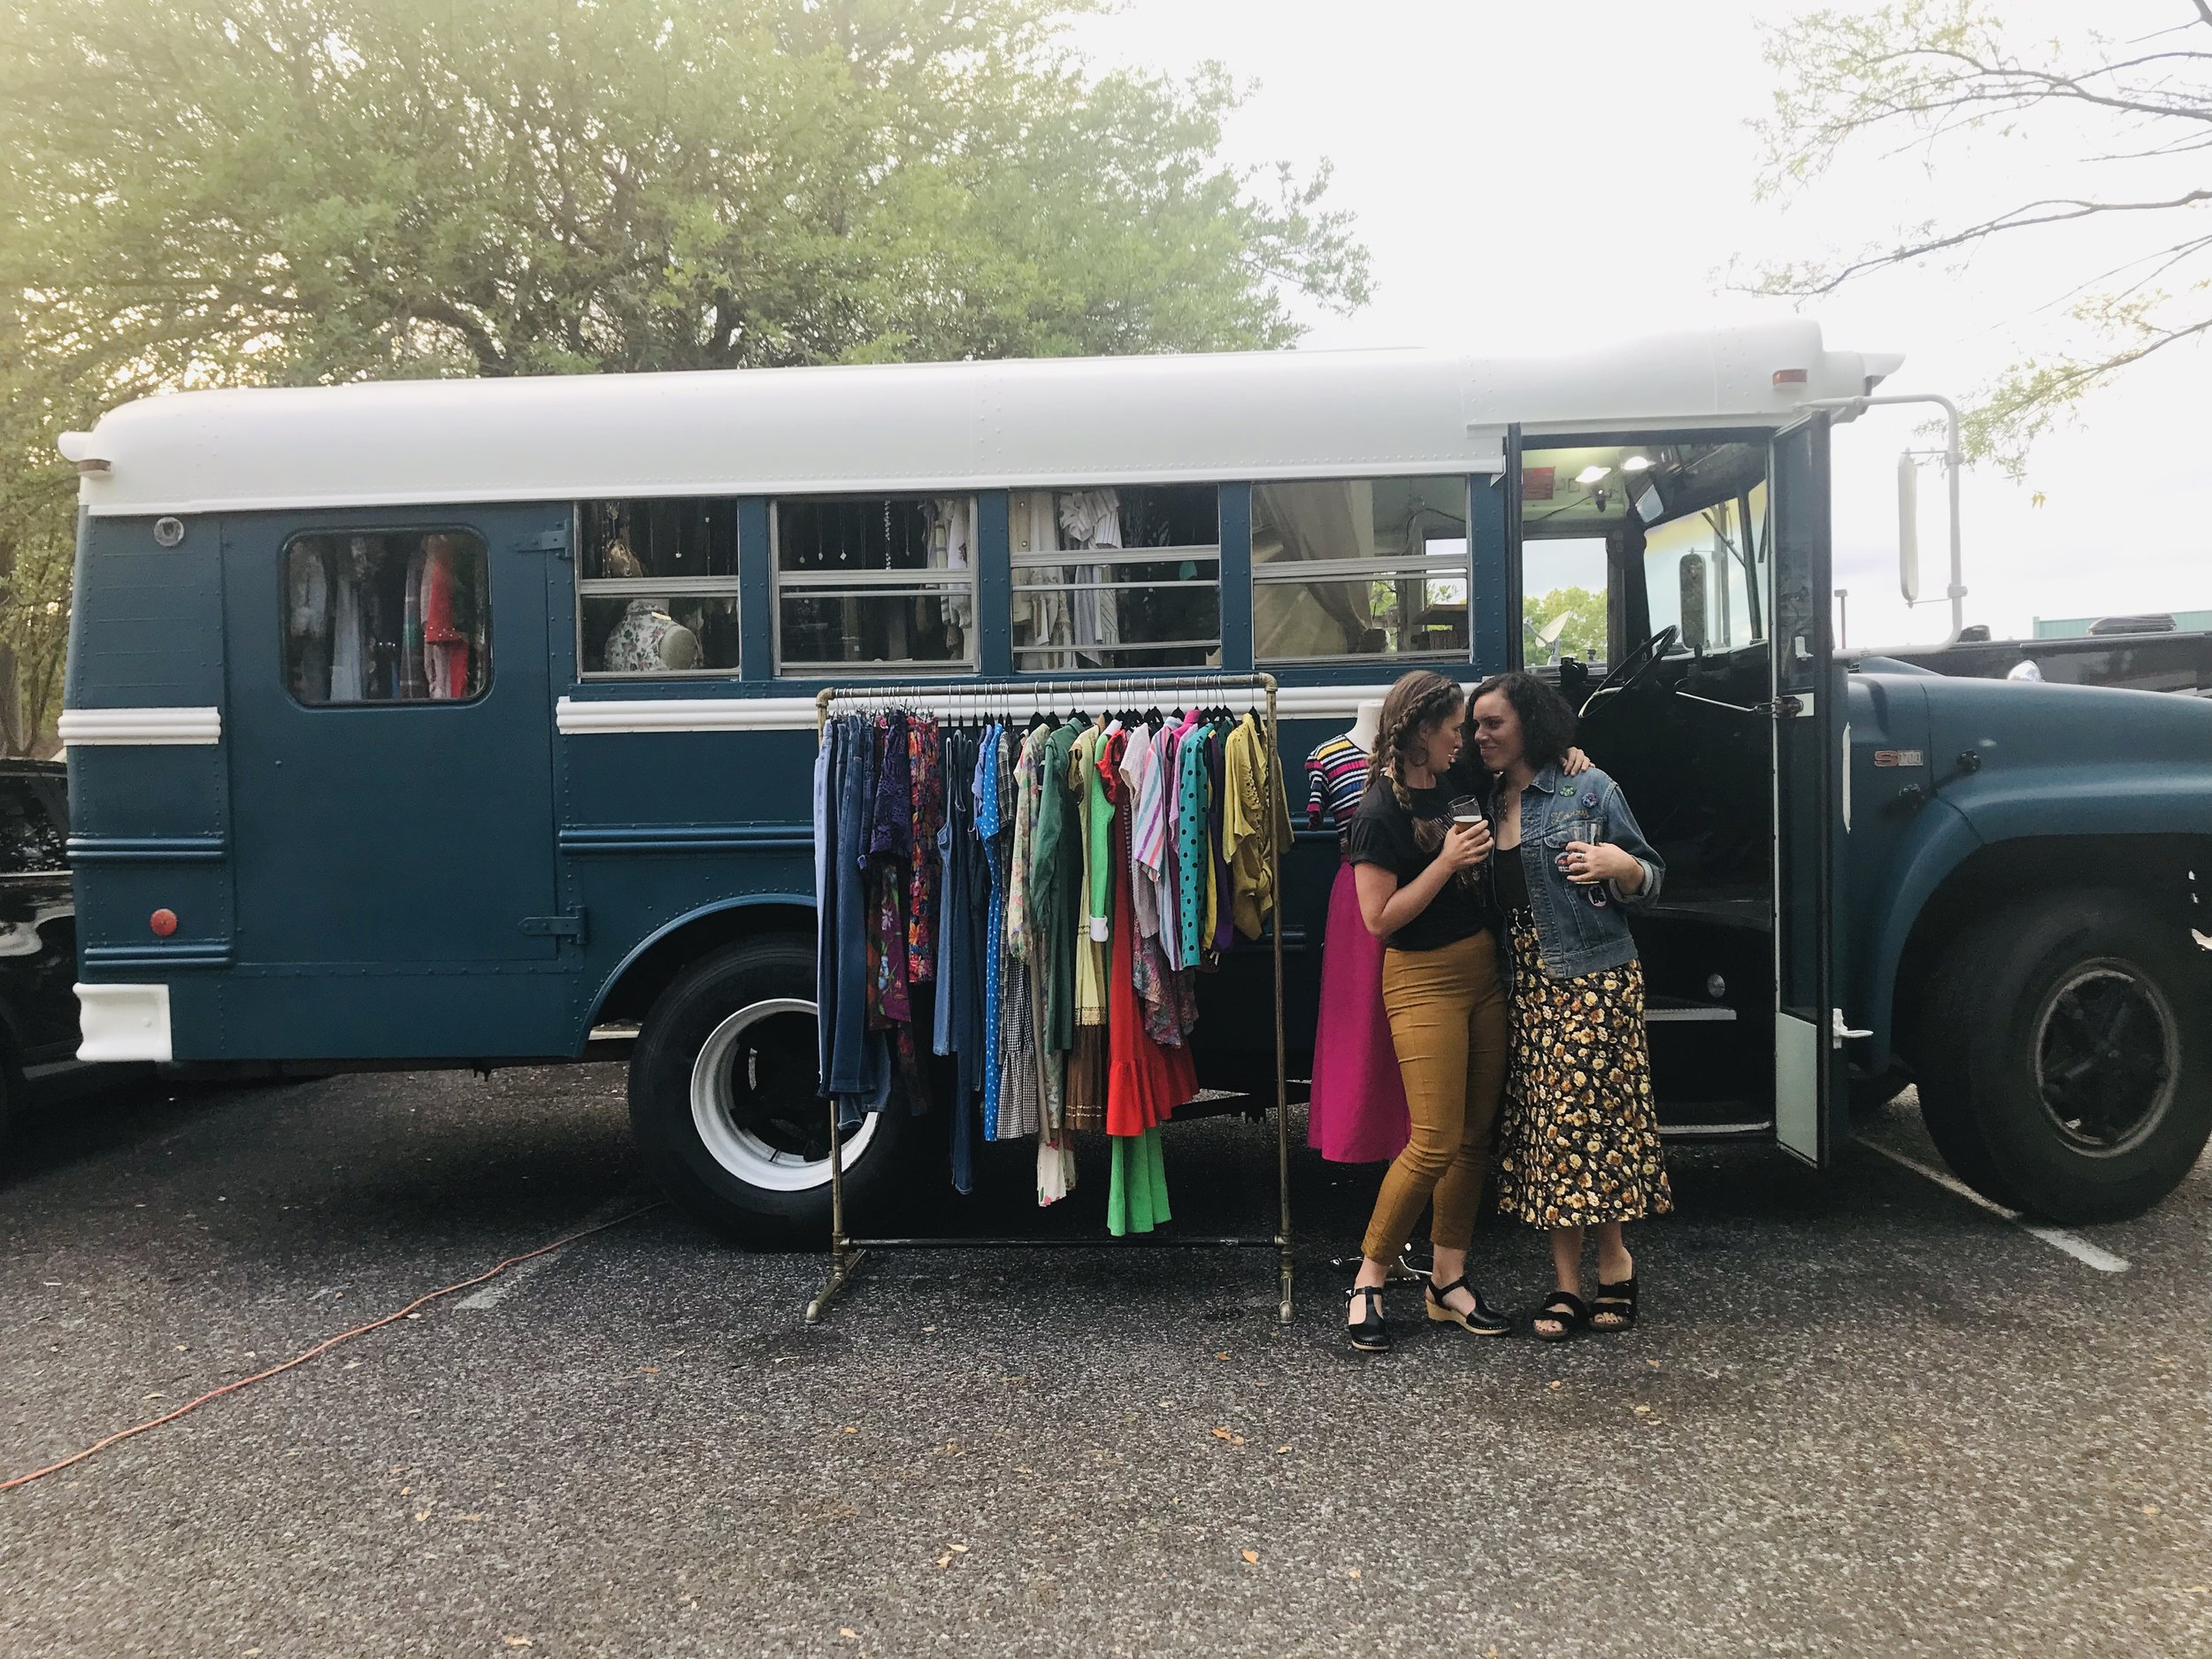 Kayla and Larrissa met in 2009 while serving milkshakes and beer at a local movie theater- always admiring each other's style. - In 2011, they decided to join forces and share their vintage collection by creating FKVintage.FKVintage lives inside a 1984 school bus the ladies had converted into a mobile shop!